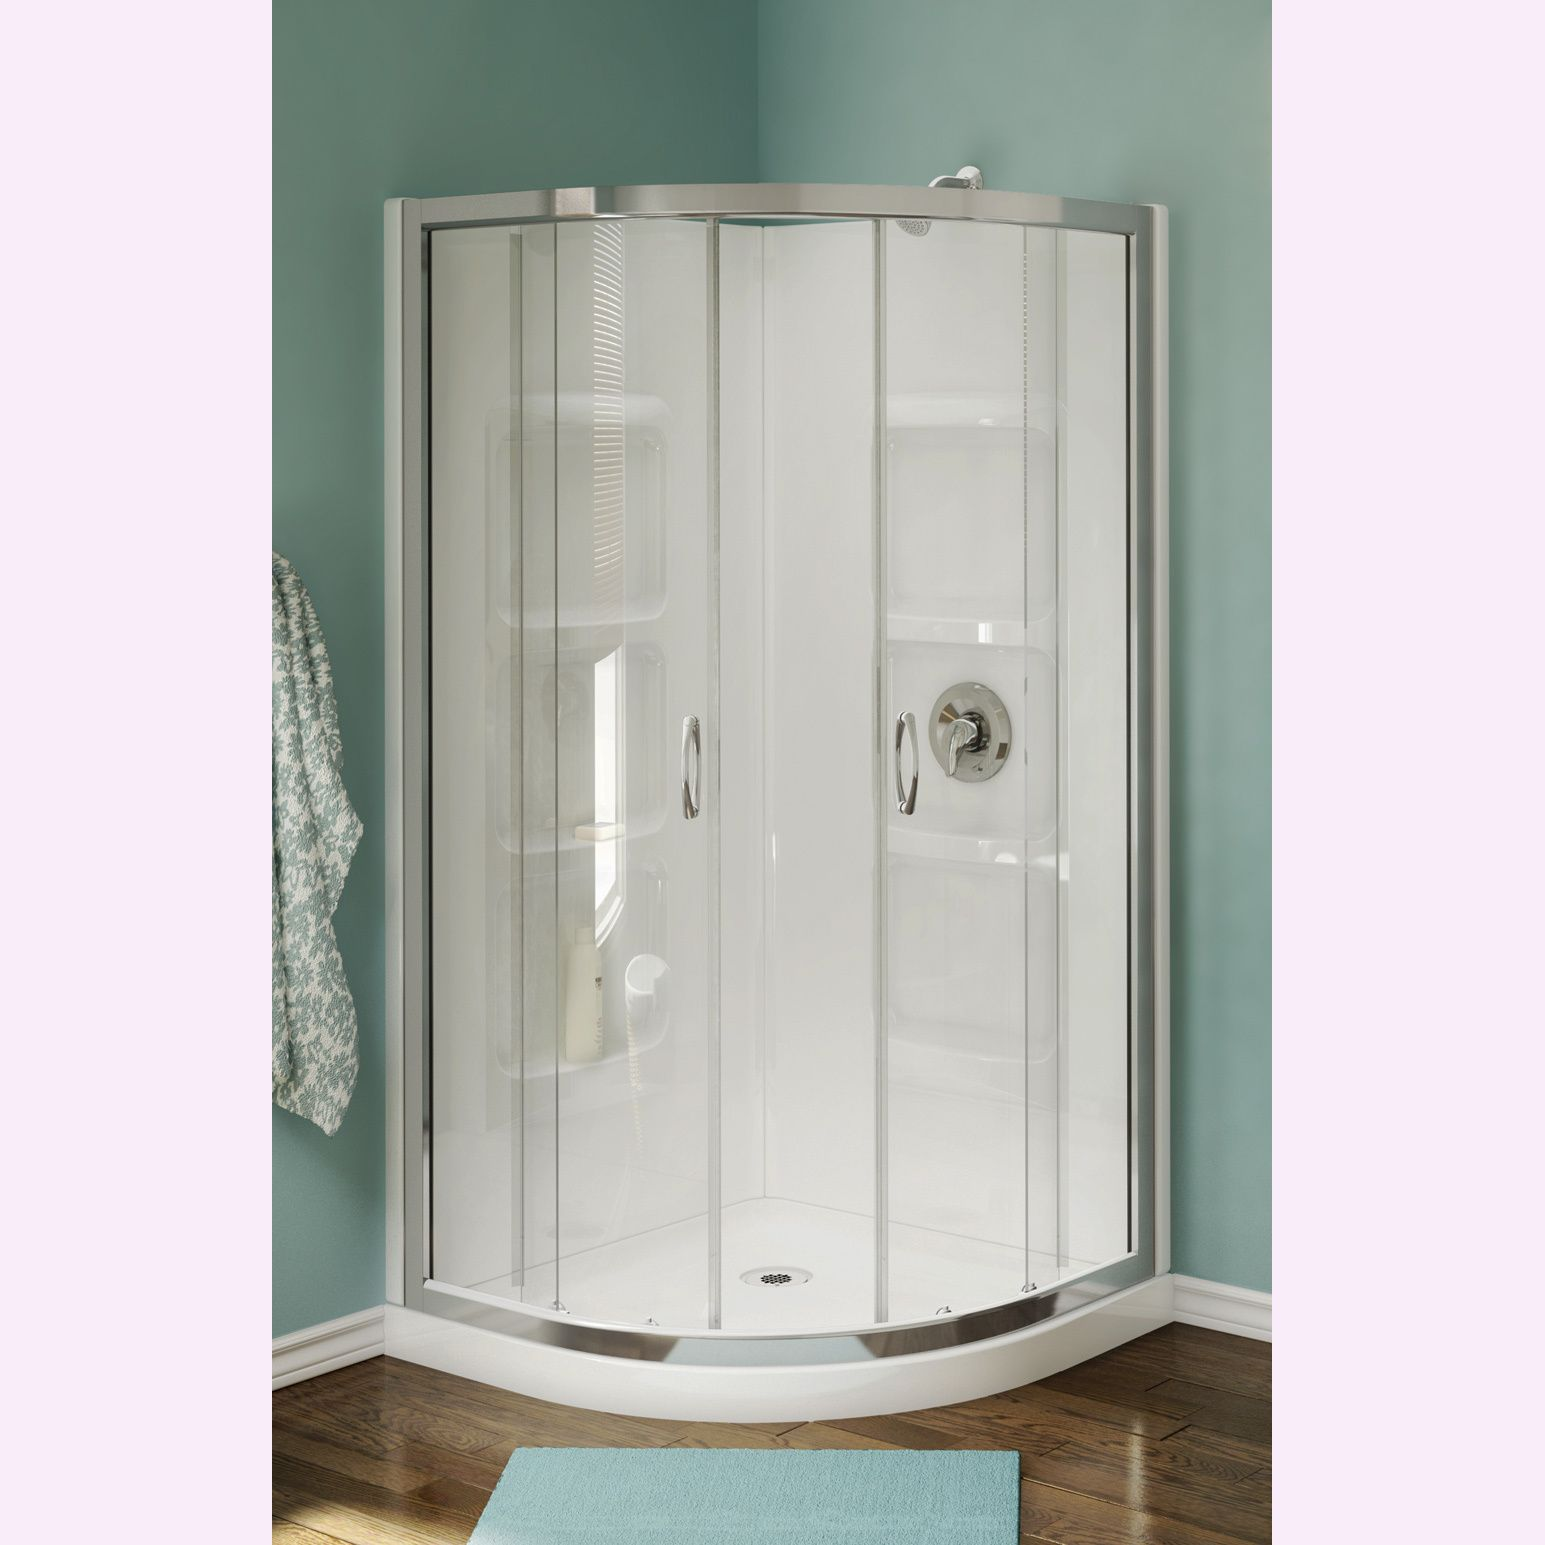 Finish your bathroom in style with the Nevada neo-round shower stall ...